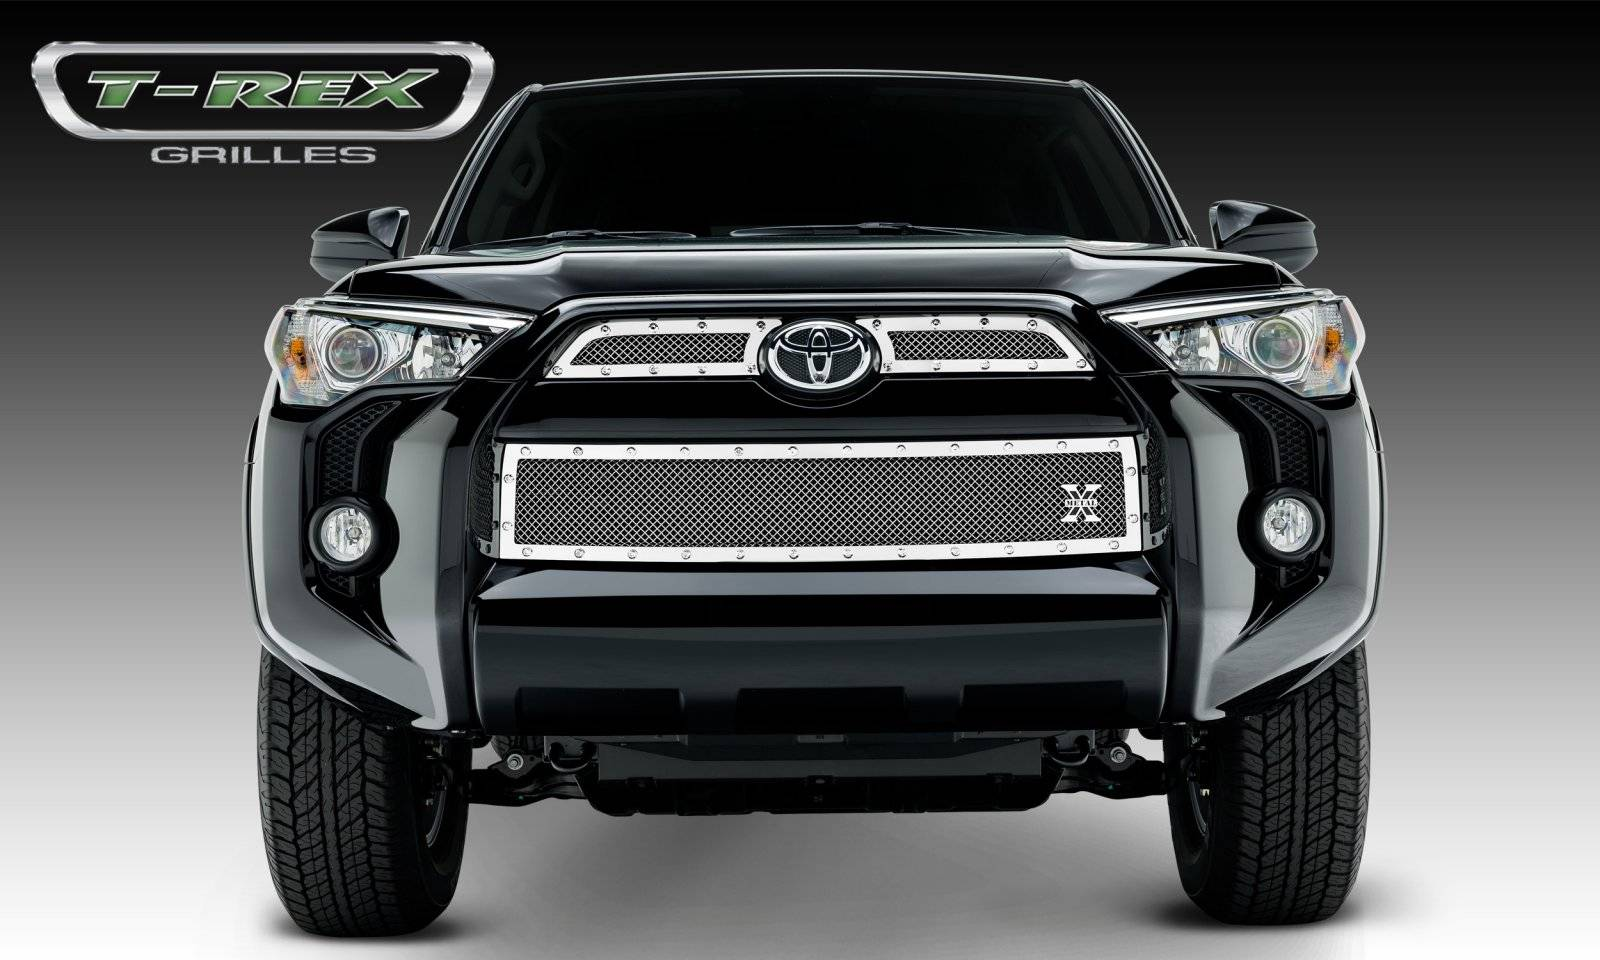 T-REX Toyota 4 Runner X-Metal, Formed Mesh Grille, Main & Bumper Kit, Overlay, 3 Pc's, Polished Stainless Steel - Pt # 6719490